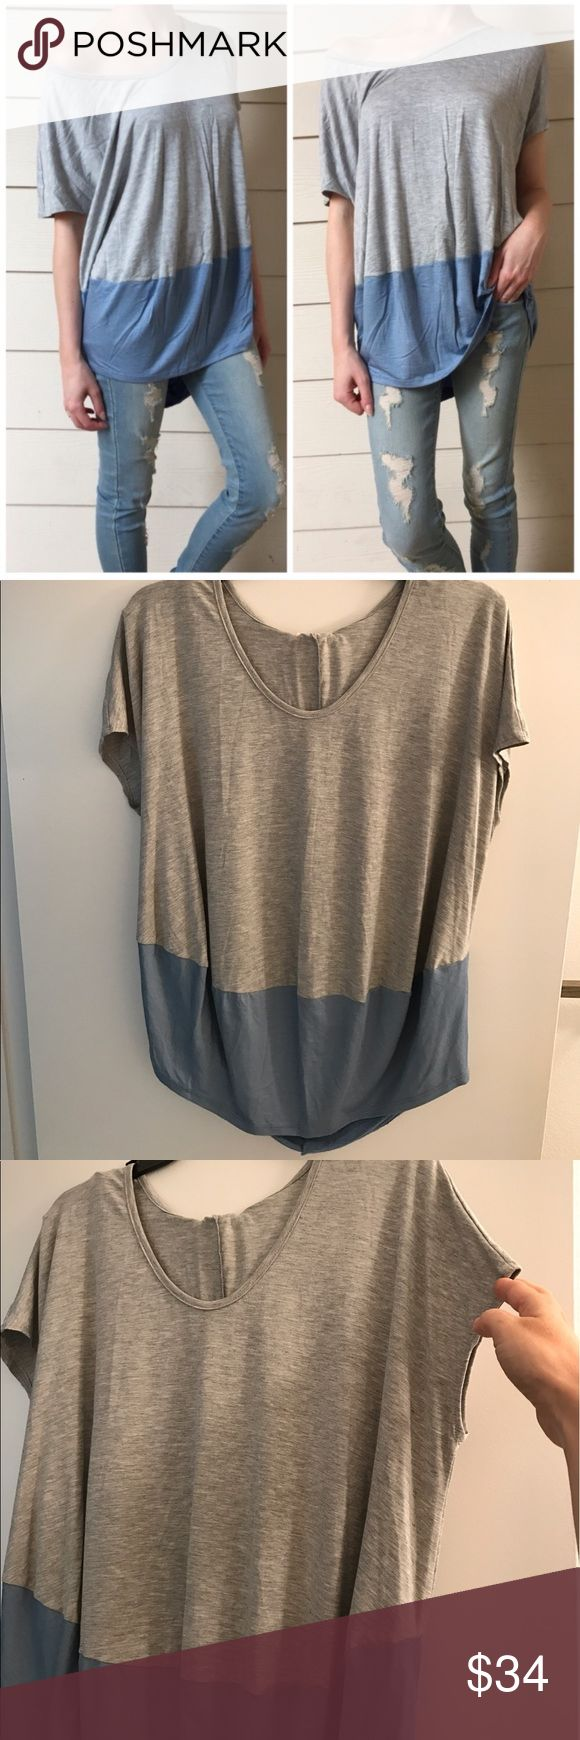 Re-posh slouchy colorblock top, NWOT. Super cute slouchy top in grey and blue. Re-posh and the first photo from the beautiful closet of @threebeez. Great top just ended up sizing up. New without tags. Size small. 23 pit, 27/30 length. Smoke free home. Tops Tees - Short Sleeve